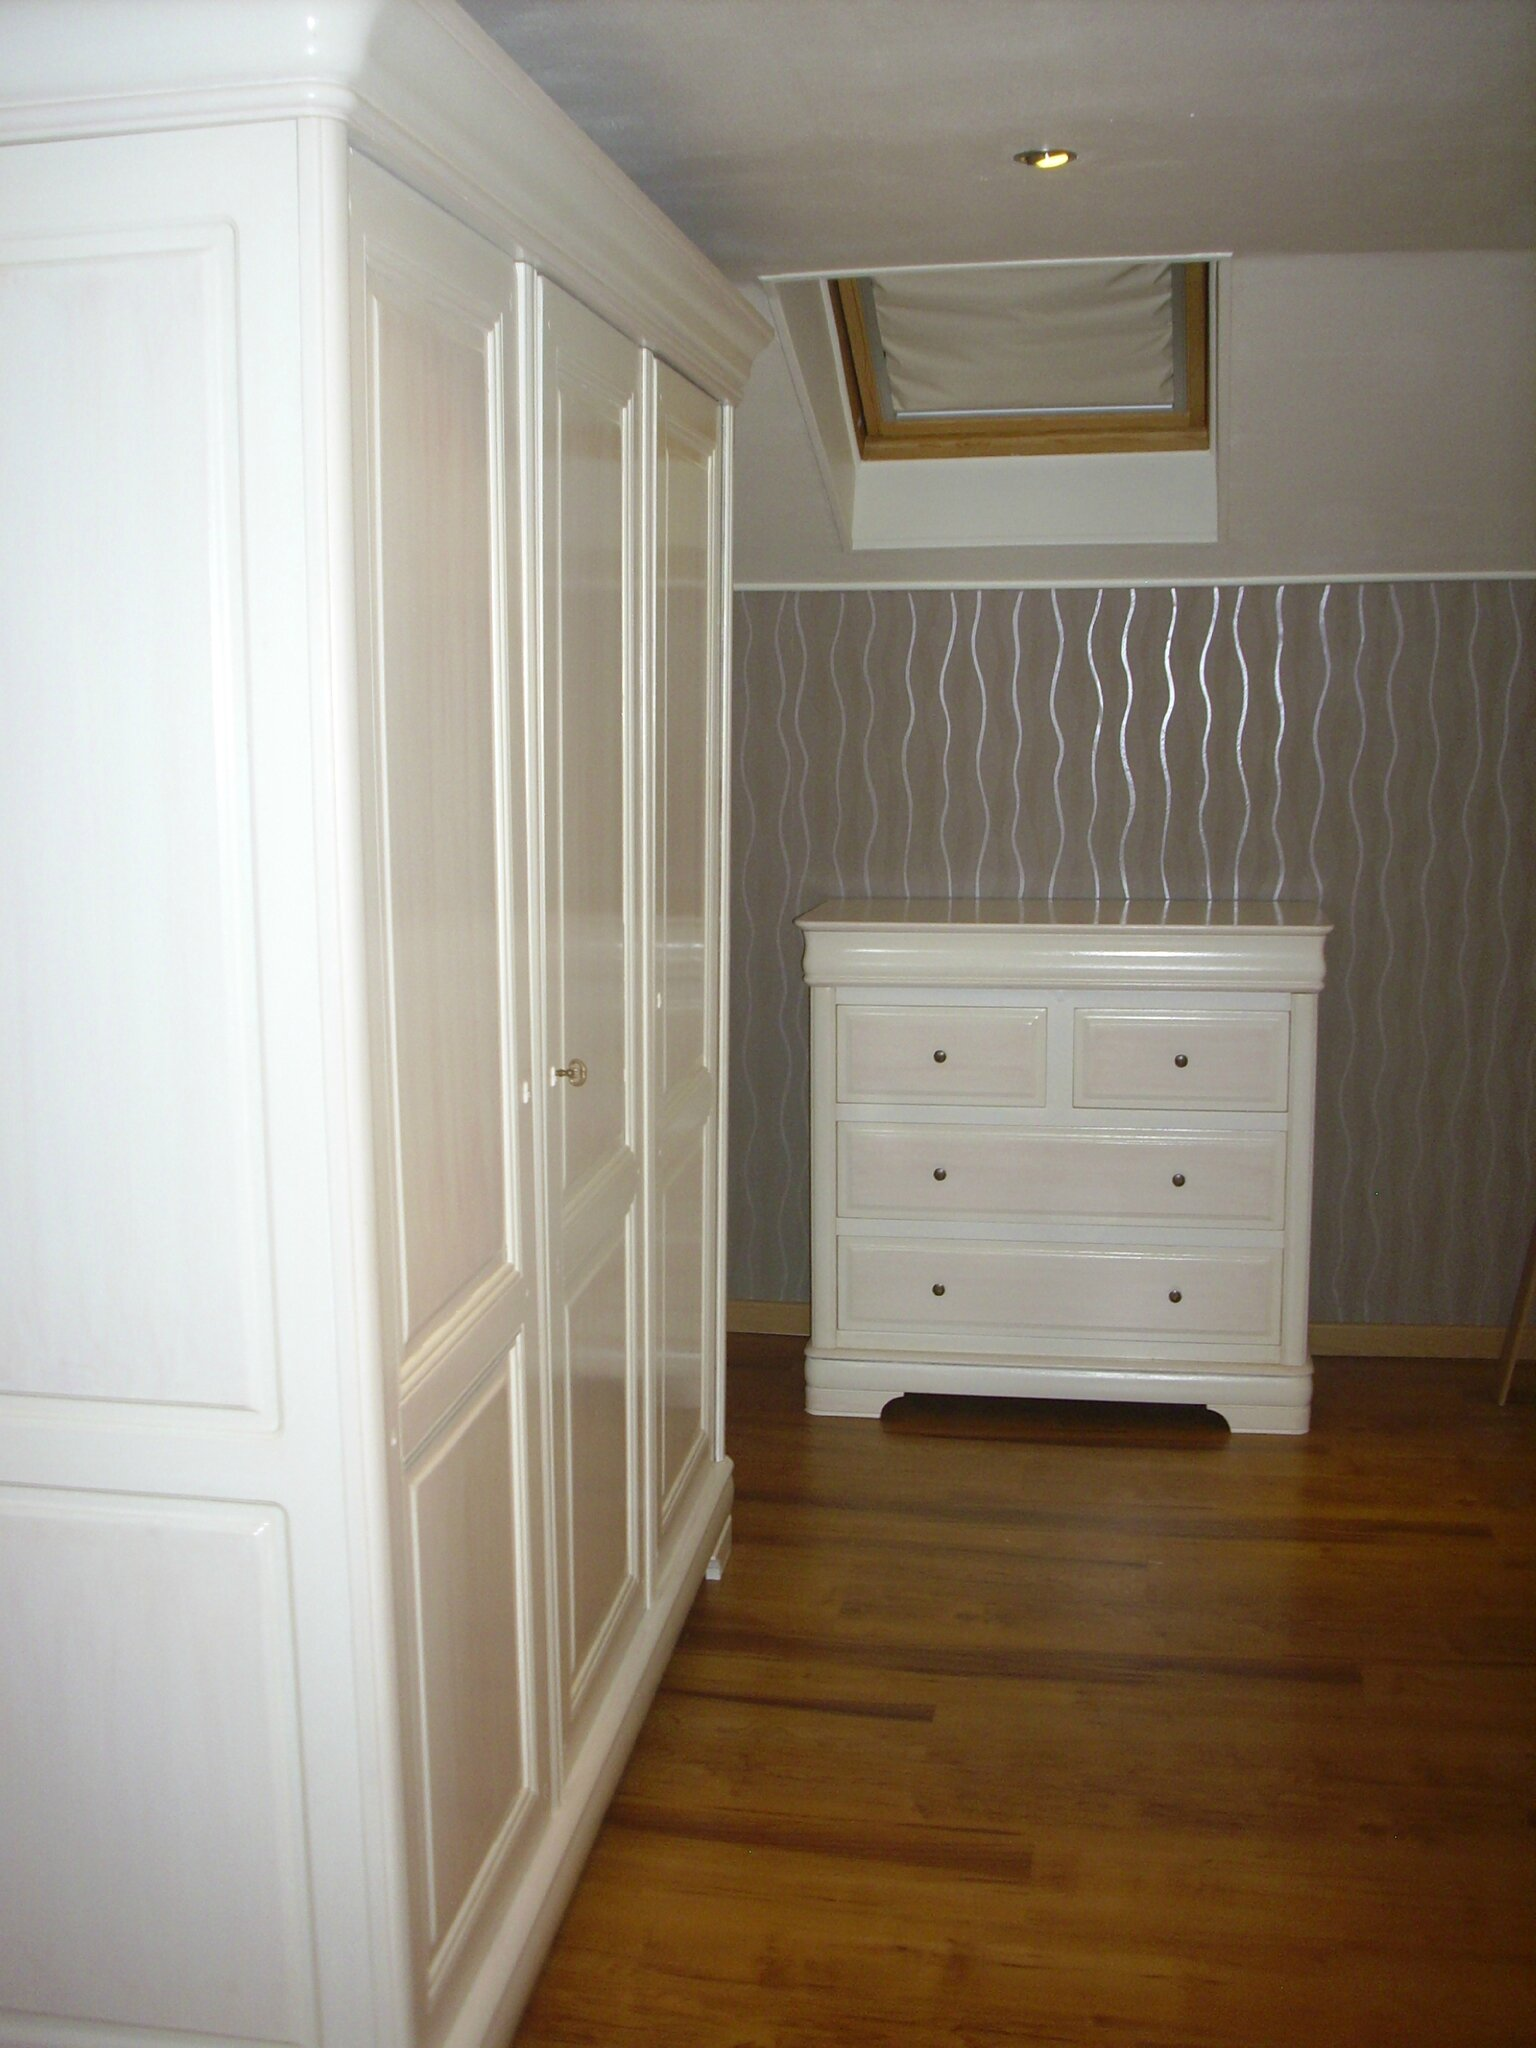 Chambre coucher armoire bonneti re commode coiffeuse - Commode chambre a coucher ...